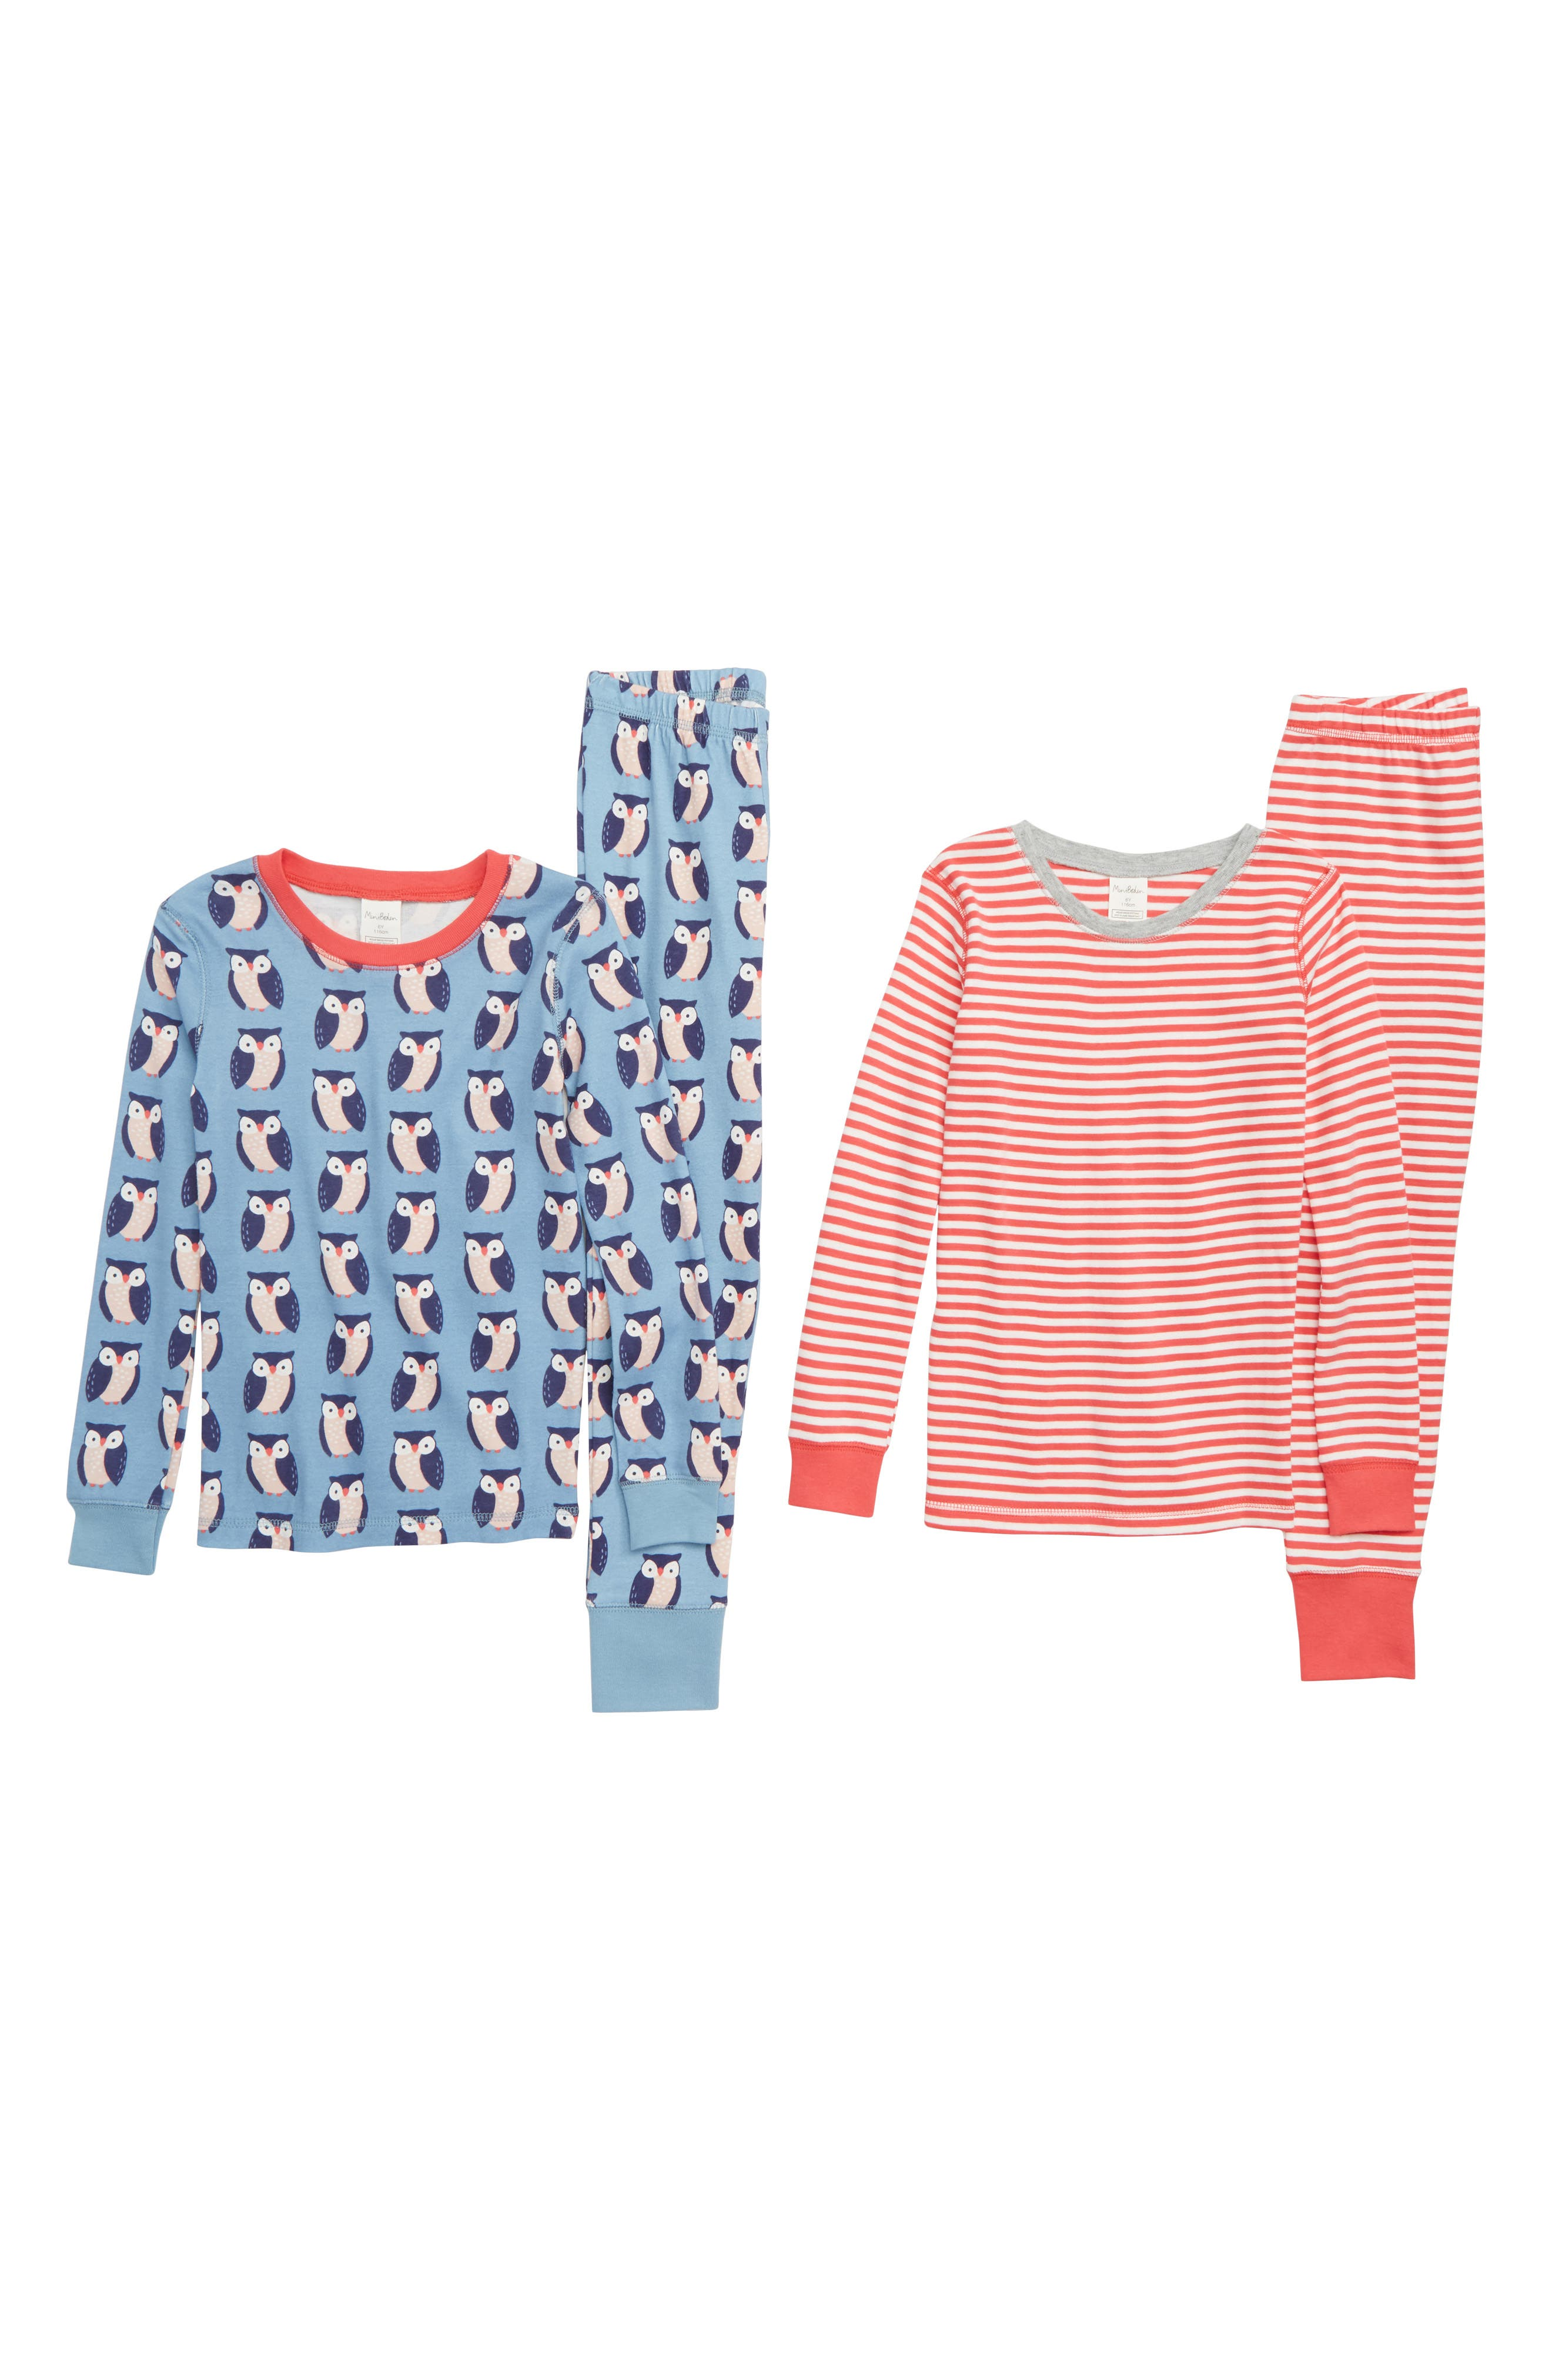 MINI BODEN,                             2-Pack Fitted Two-Piece Pajamas,                             Main thumbnail 1, color,                             424